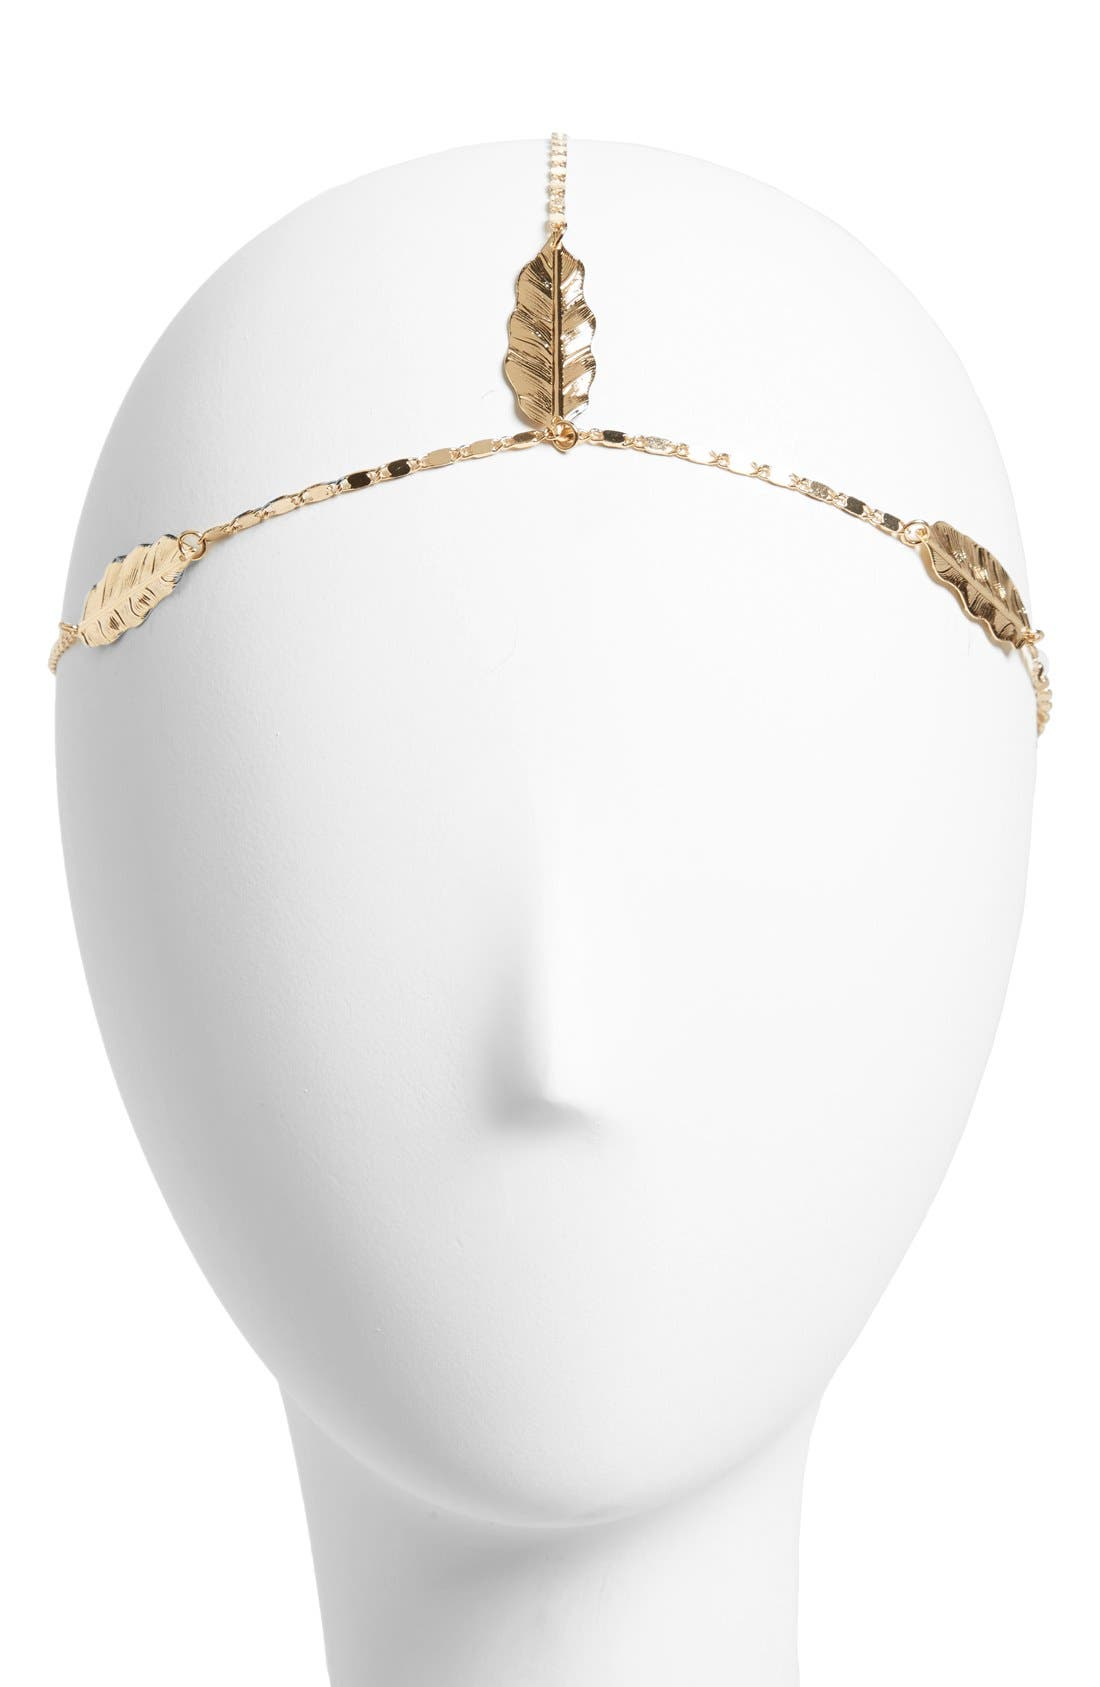 Alternate Image 1 Selected - Berry 'Leaf' Beaded Head Chain